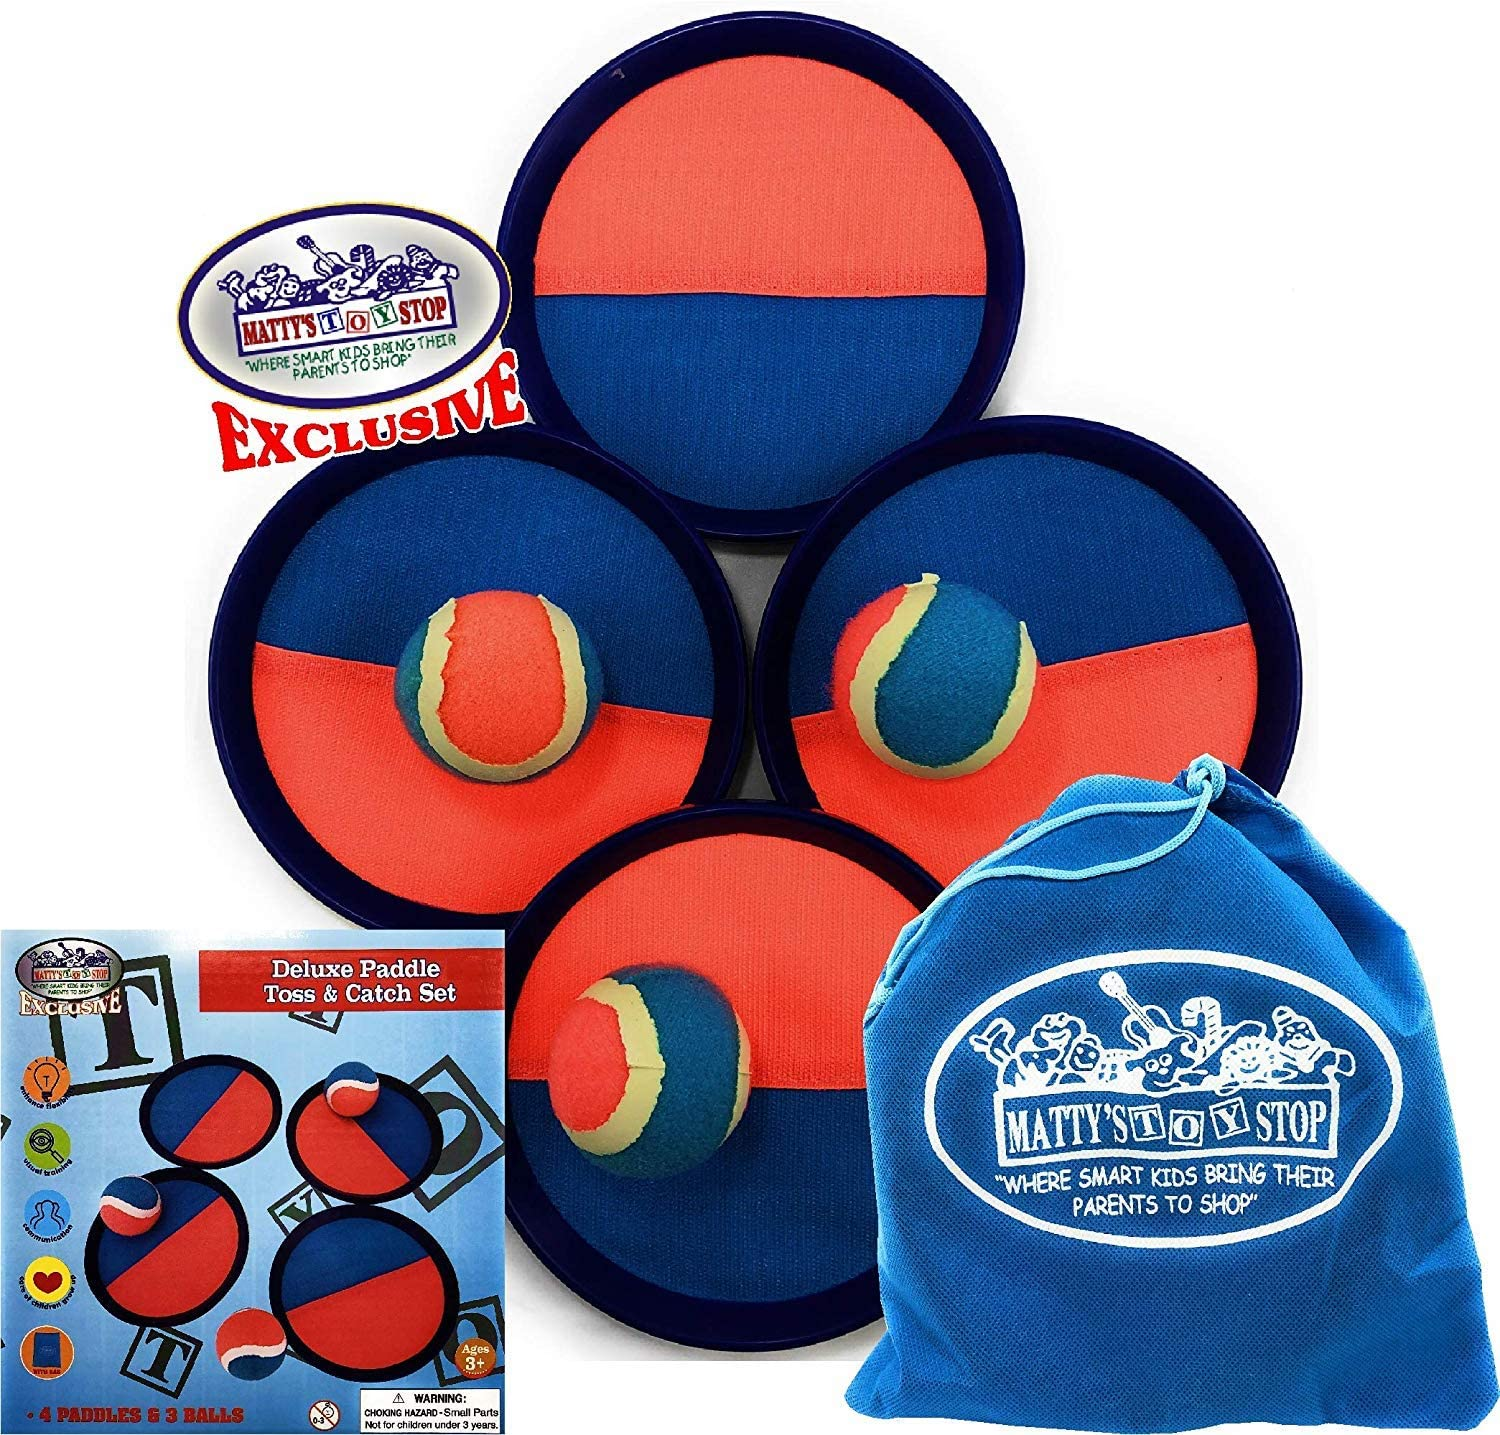 Matty's Toy Stop Deluxe Toss & Catch (Hook & Loop) Tropical Colors Paddle Game Set with 4 Paddles, 3 Balls & Storage Bag